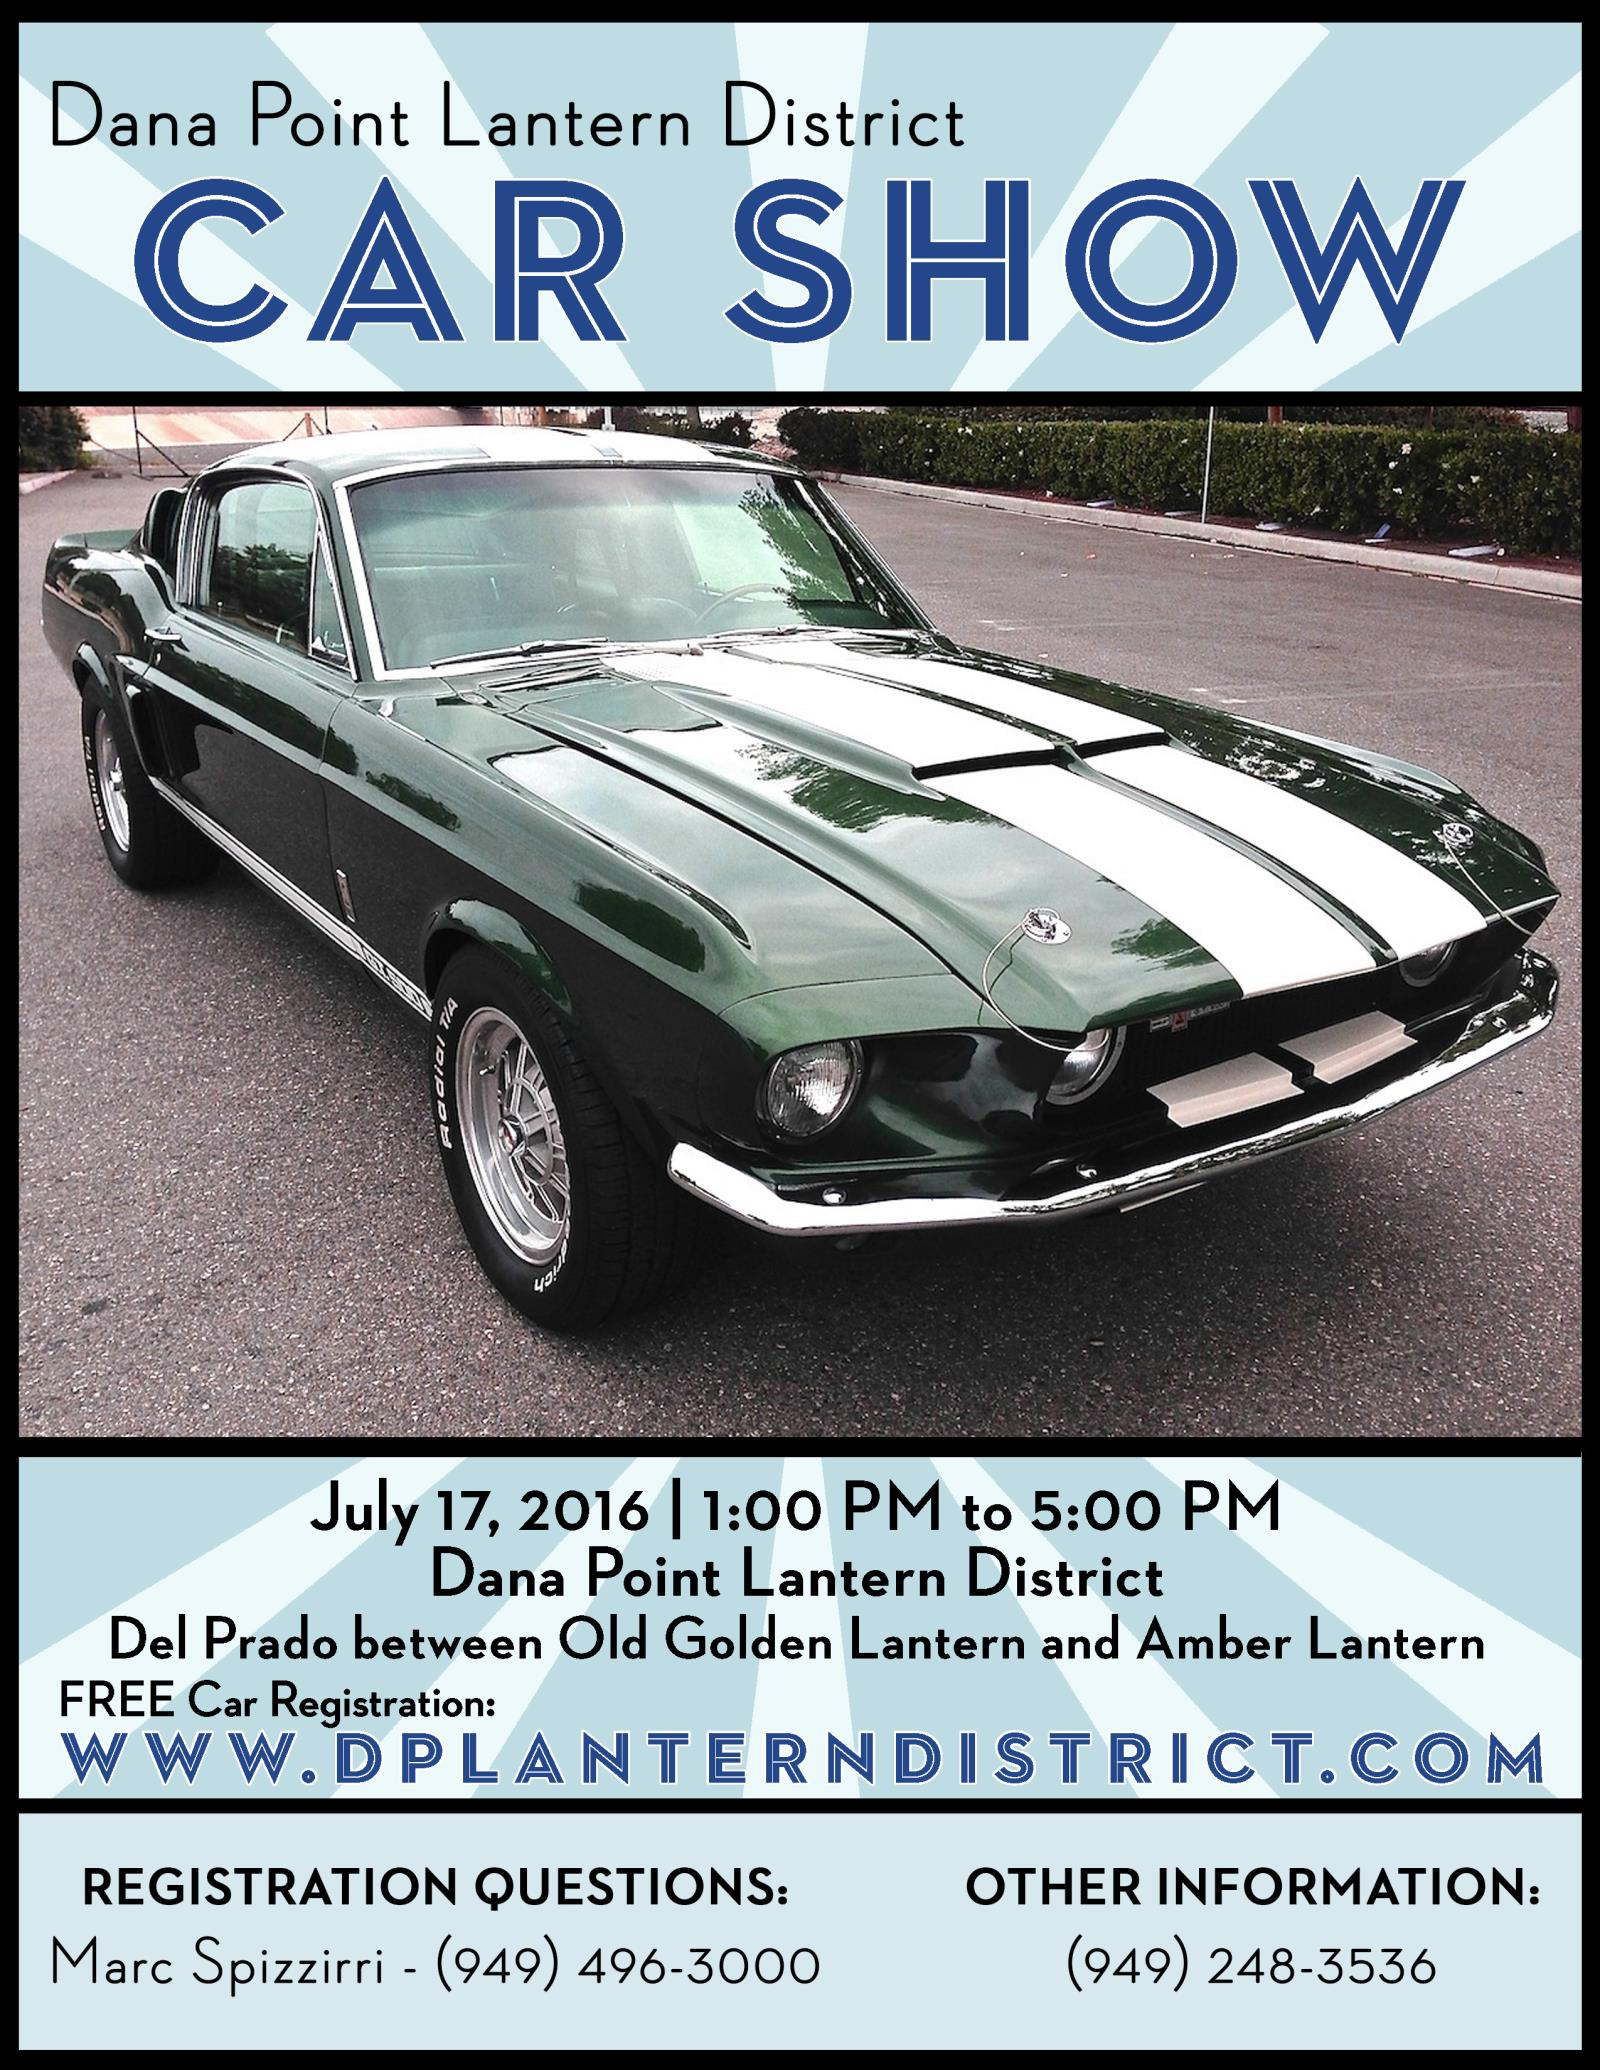 Lantern District Car Show Calendar City Of Dana Point - Car show calendar